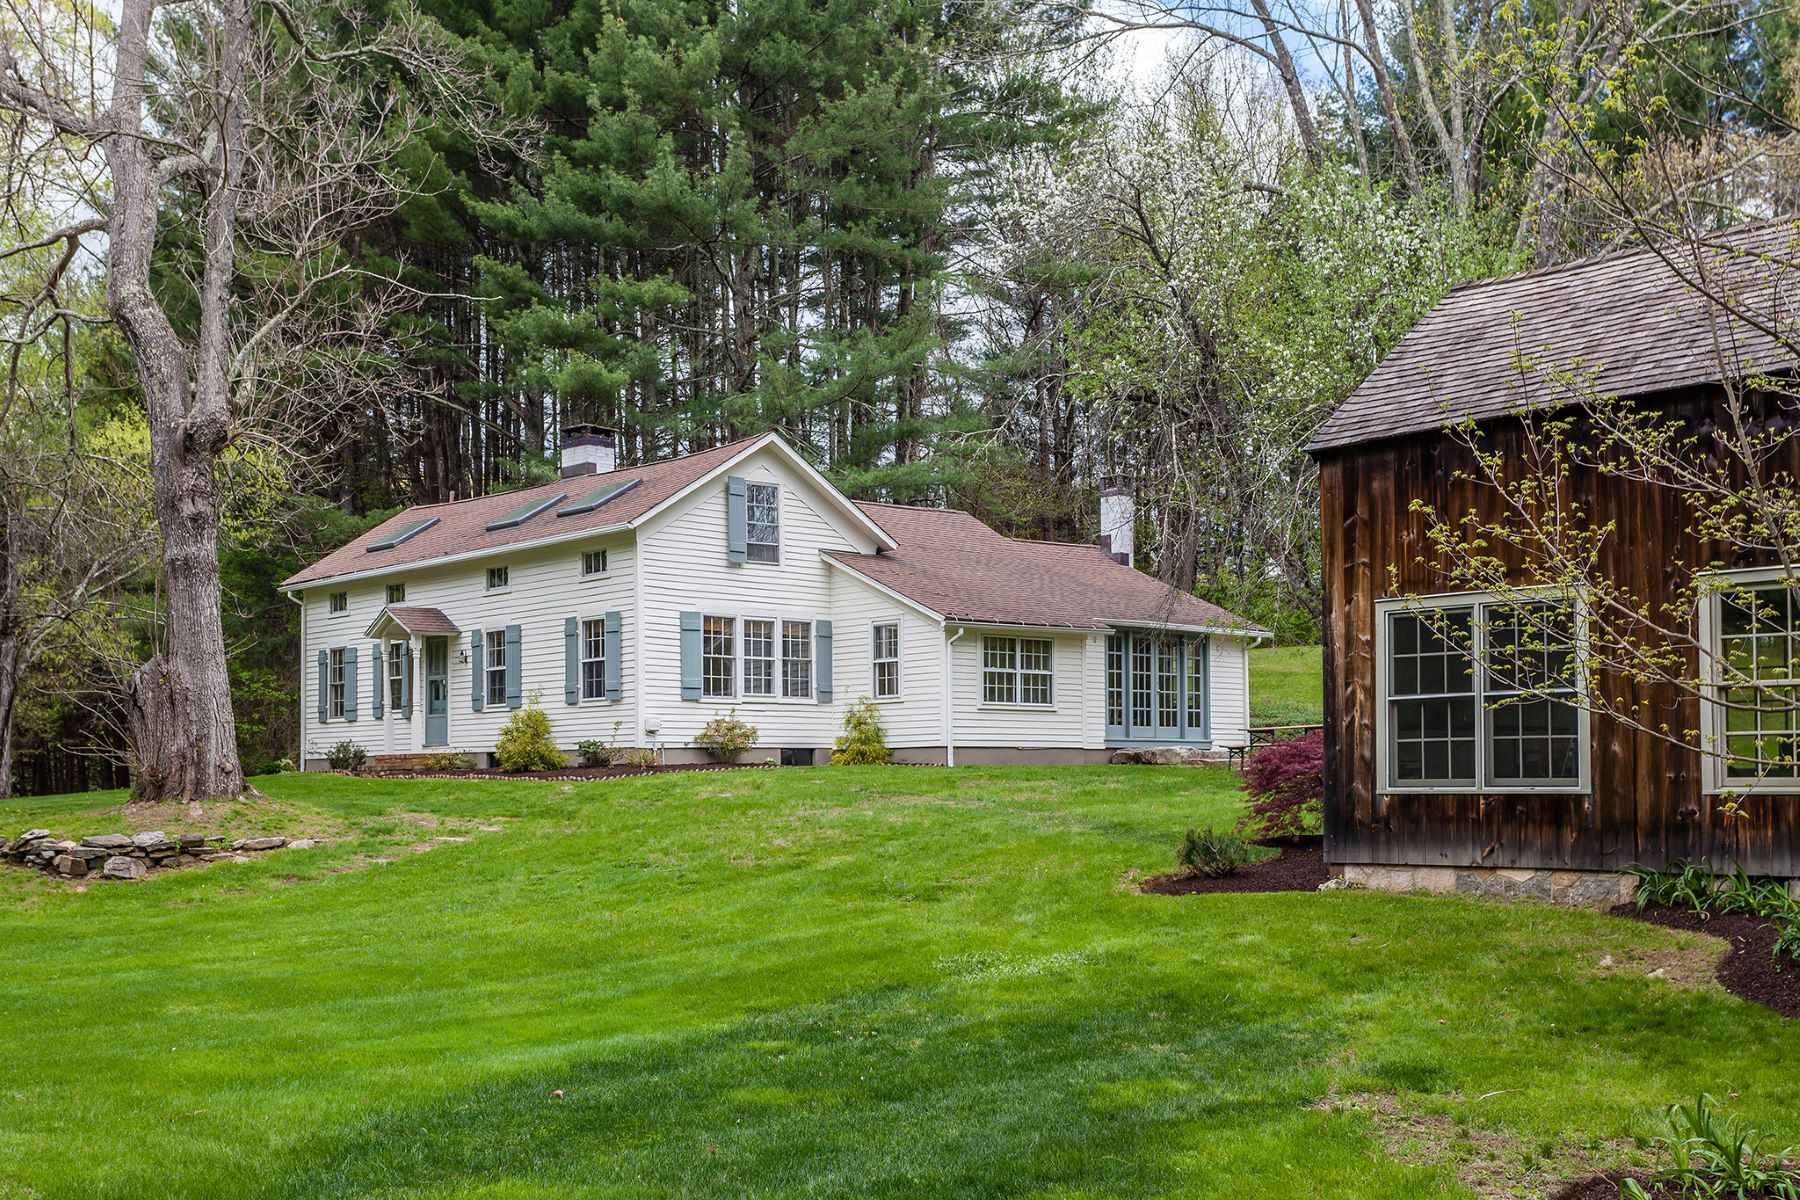 Casa Unifamiliar por un Venta en Luxe country retreat on 25 Acres 91 Cherniske Rd New Milford, Connecticut 06776 Estados Unidos